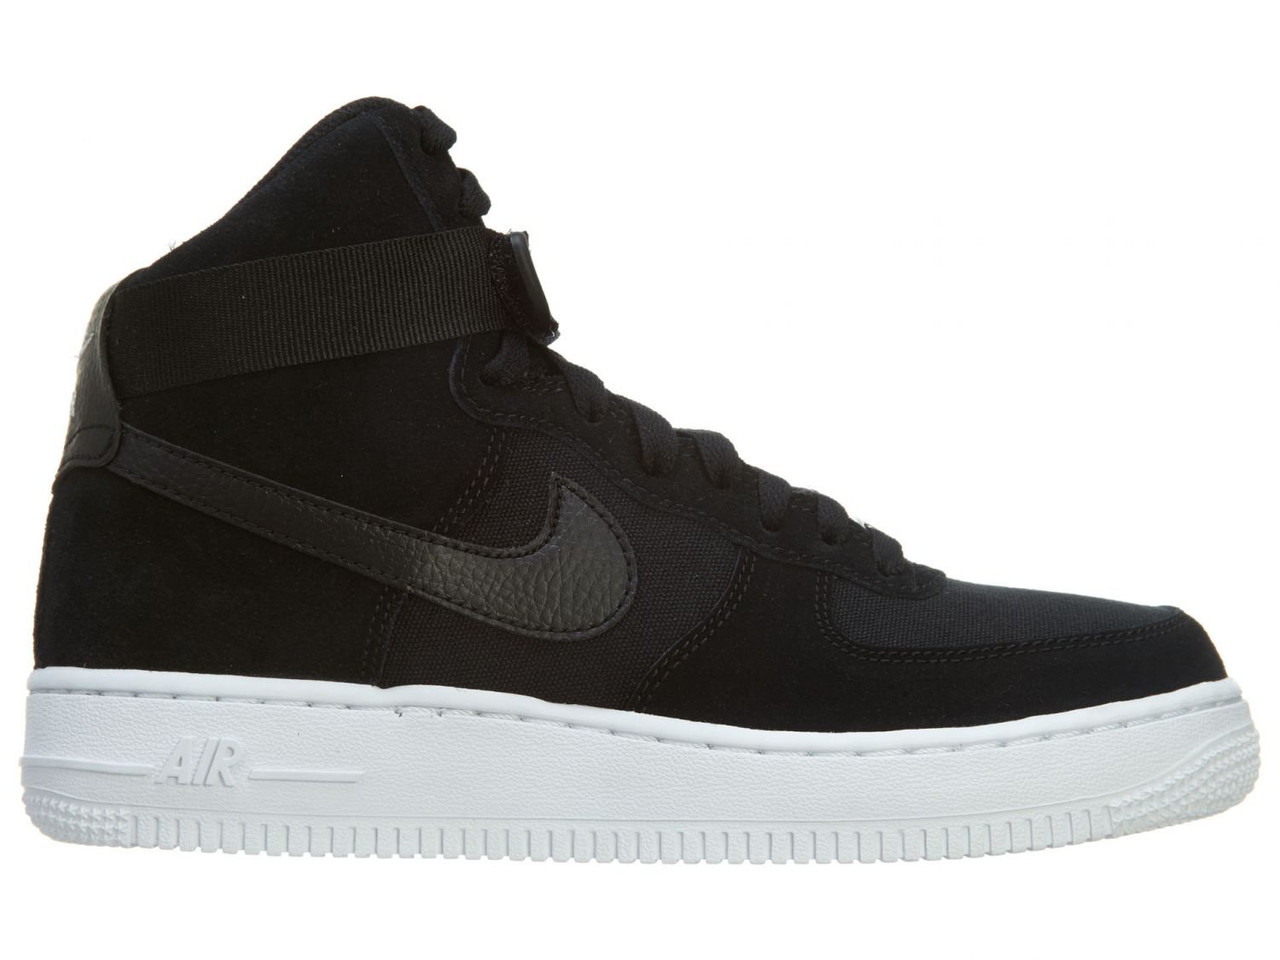 b2894d3dc555 Мужские кроссовки Nike Air Force 1 Mid (Gs) Style Number  653998-009 ...